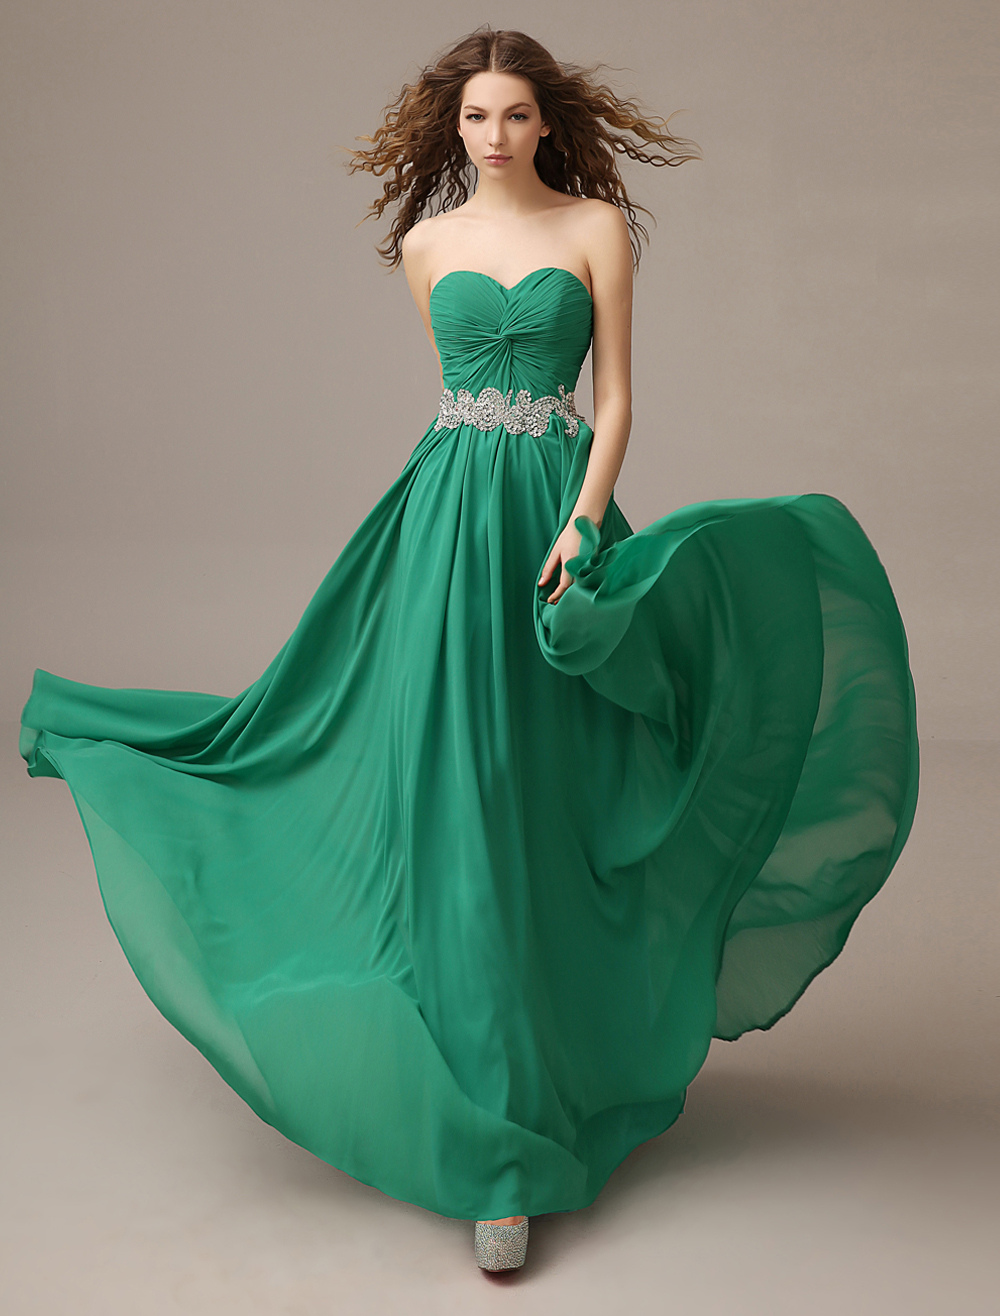 Sweetheart Prom Dress A Line Twisted Chiffon Evening Dress Dark Green Pleated Backless Party Dress